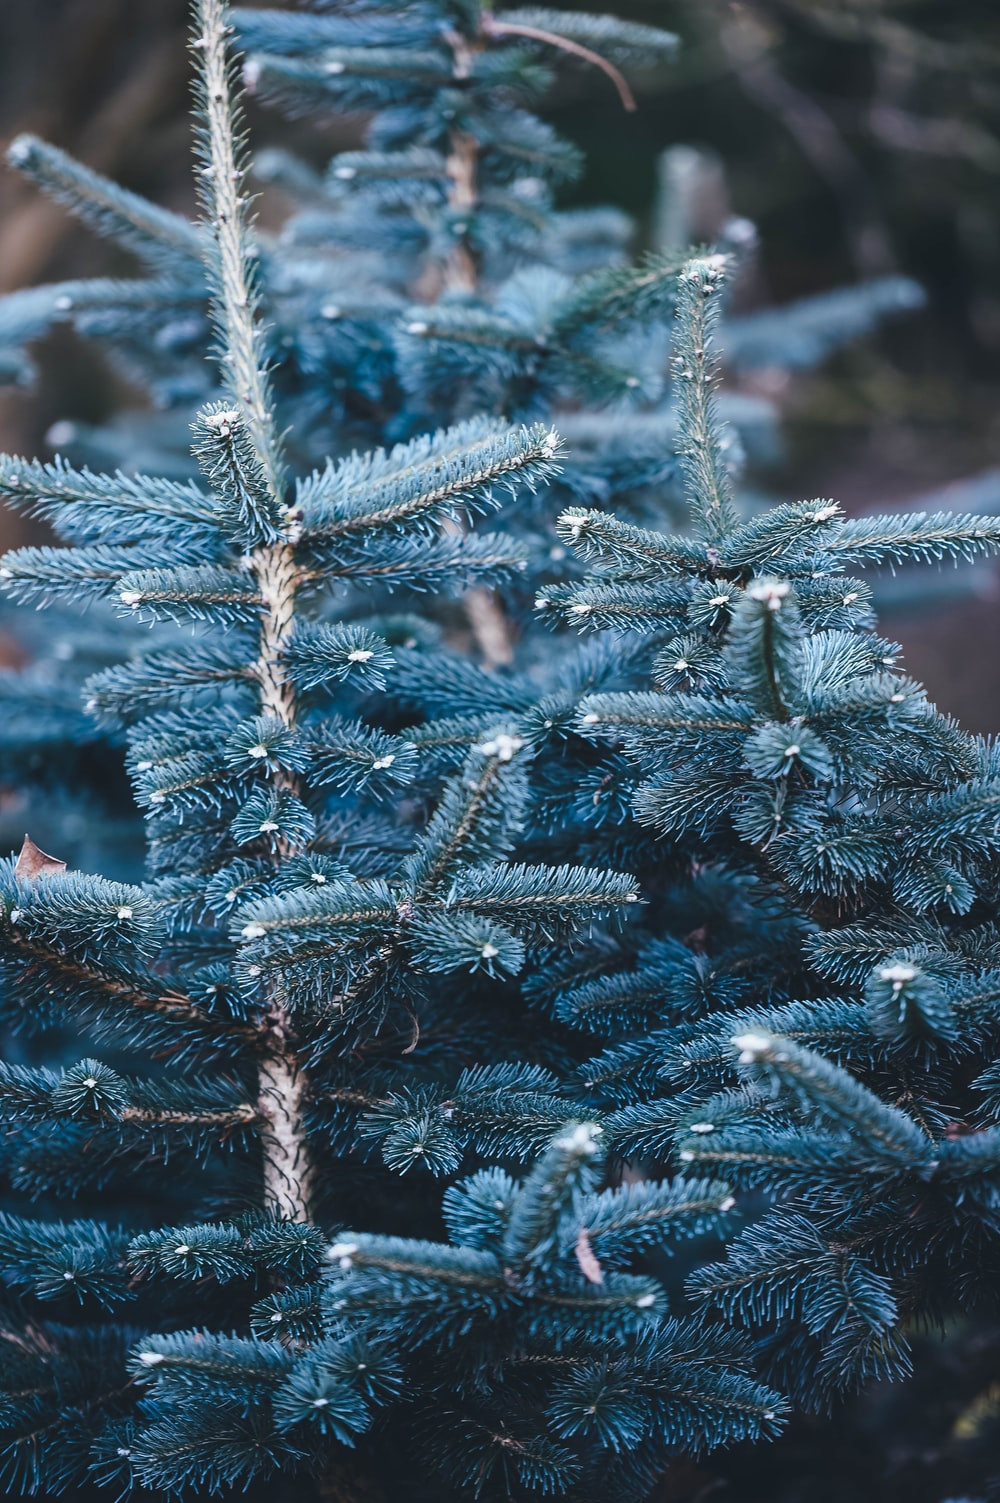 Needly branches of a spruce tree